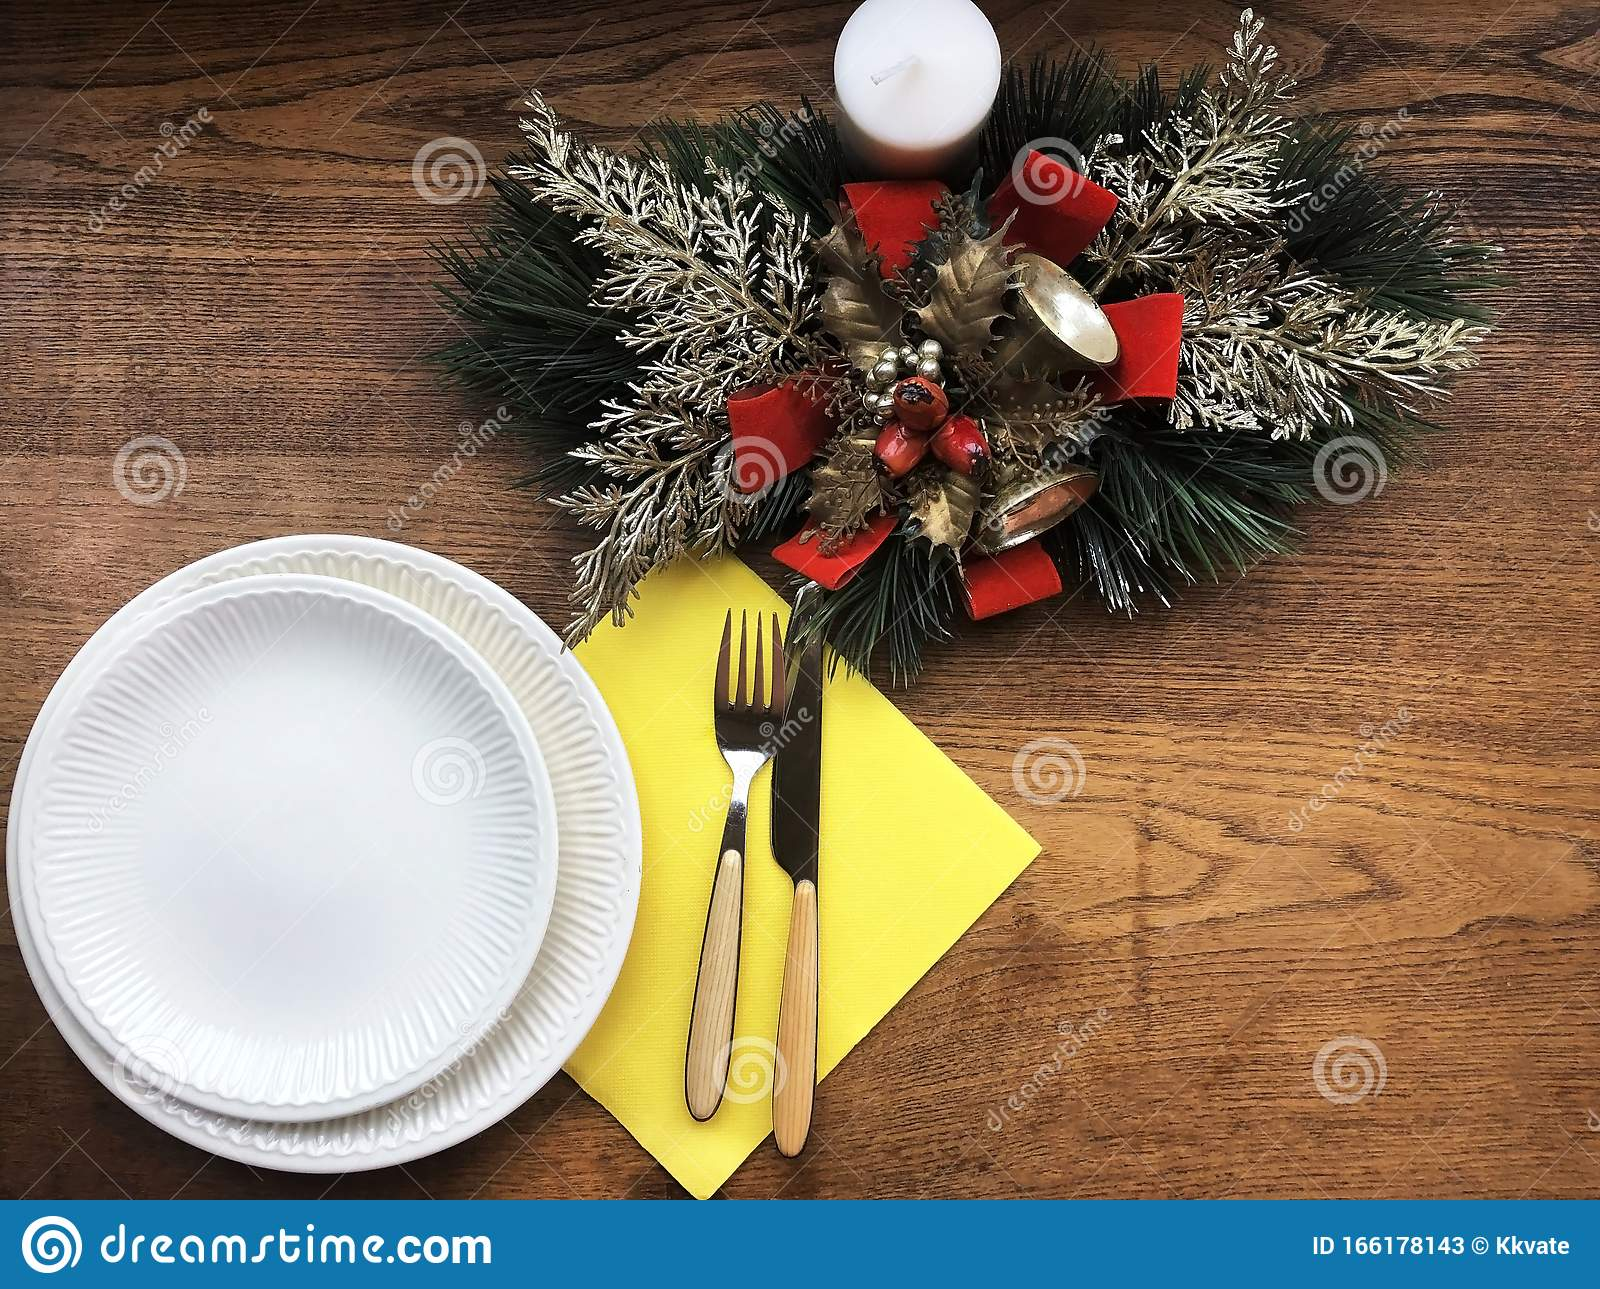 Christmas Decoration On Wooden Table Festive Dinner Setting White Empty Plates Cutlety Candle And Christmas Wreath Wooden Tab Stock Image Image Of Present Candle 166178143